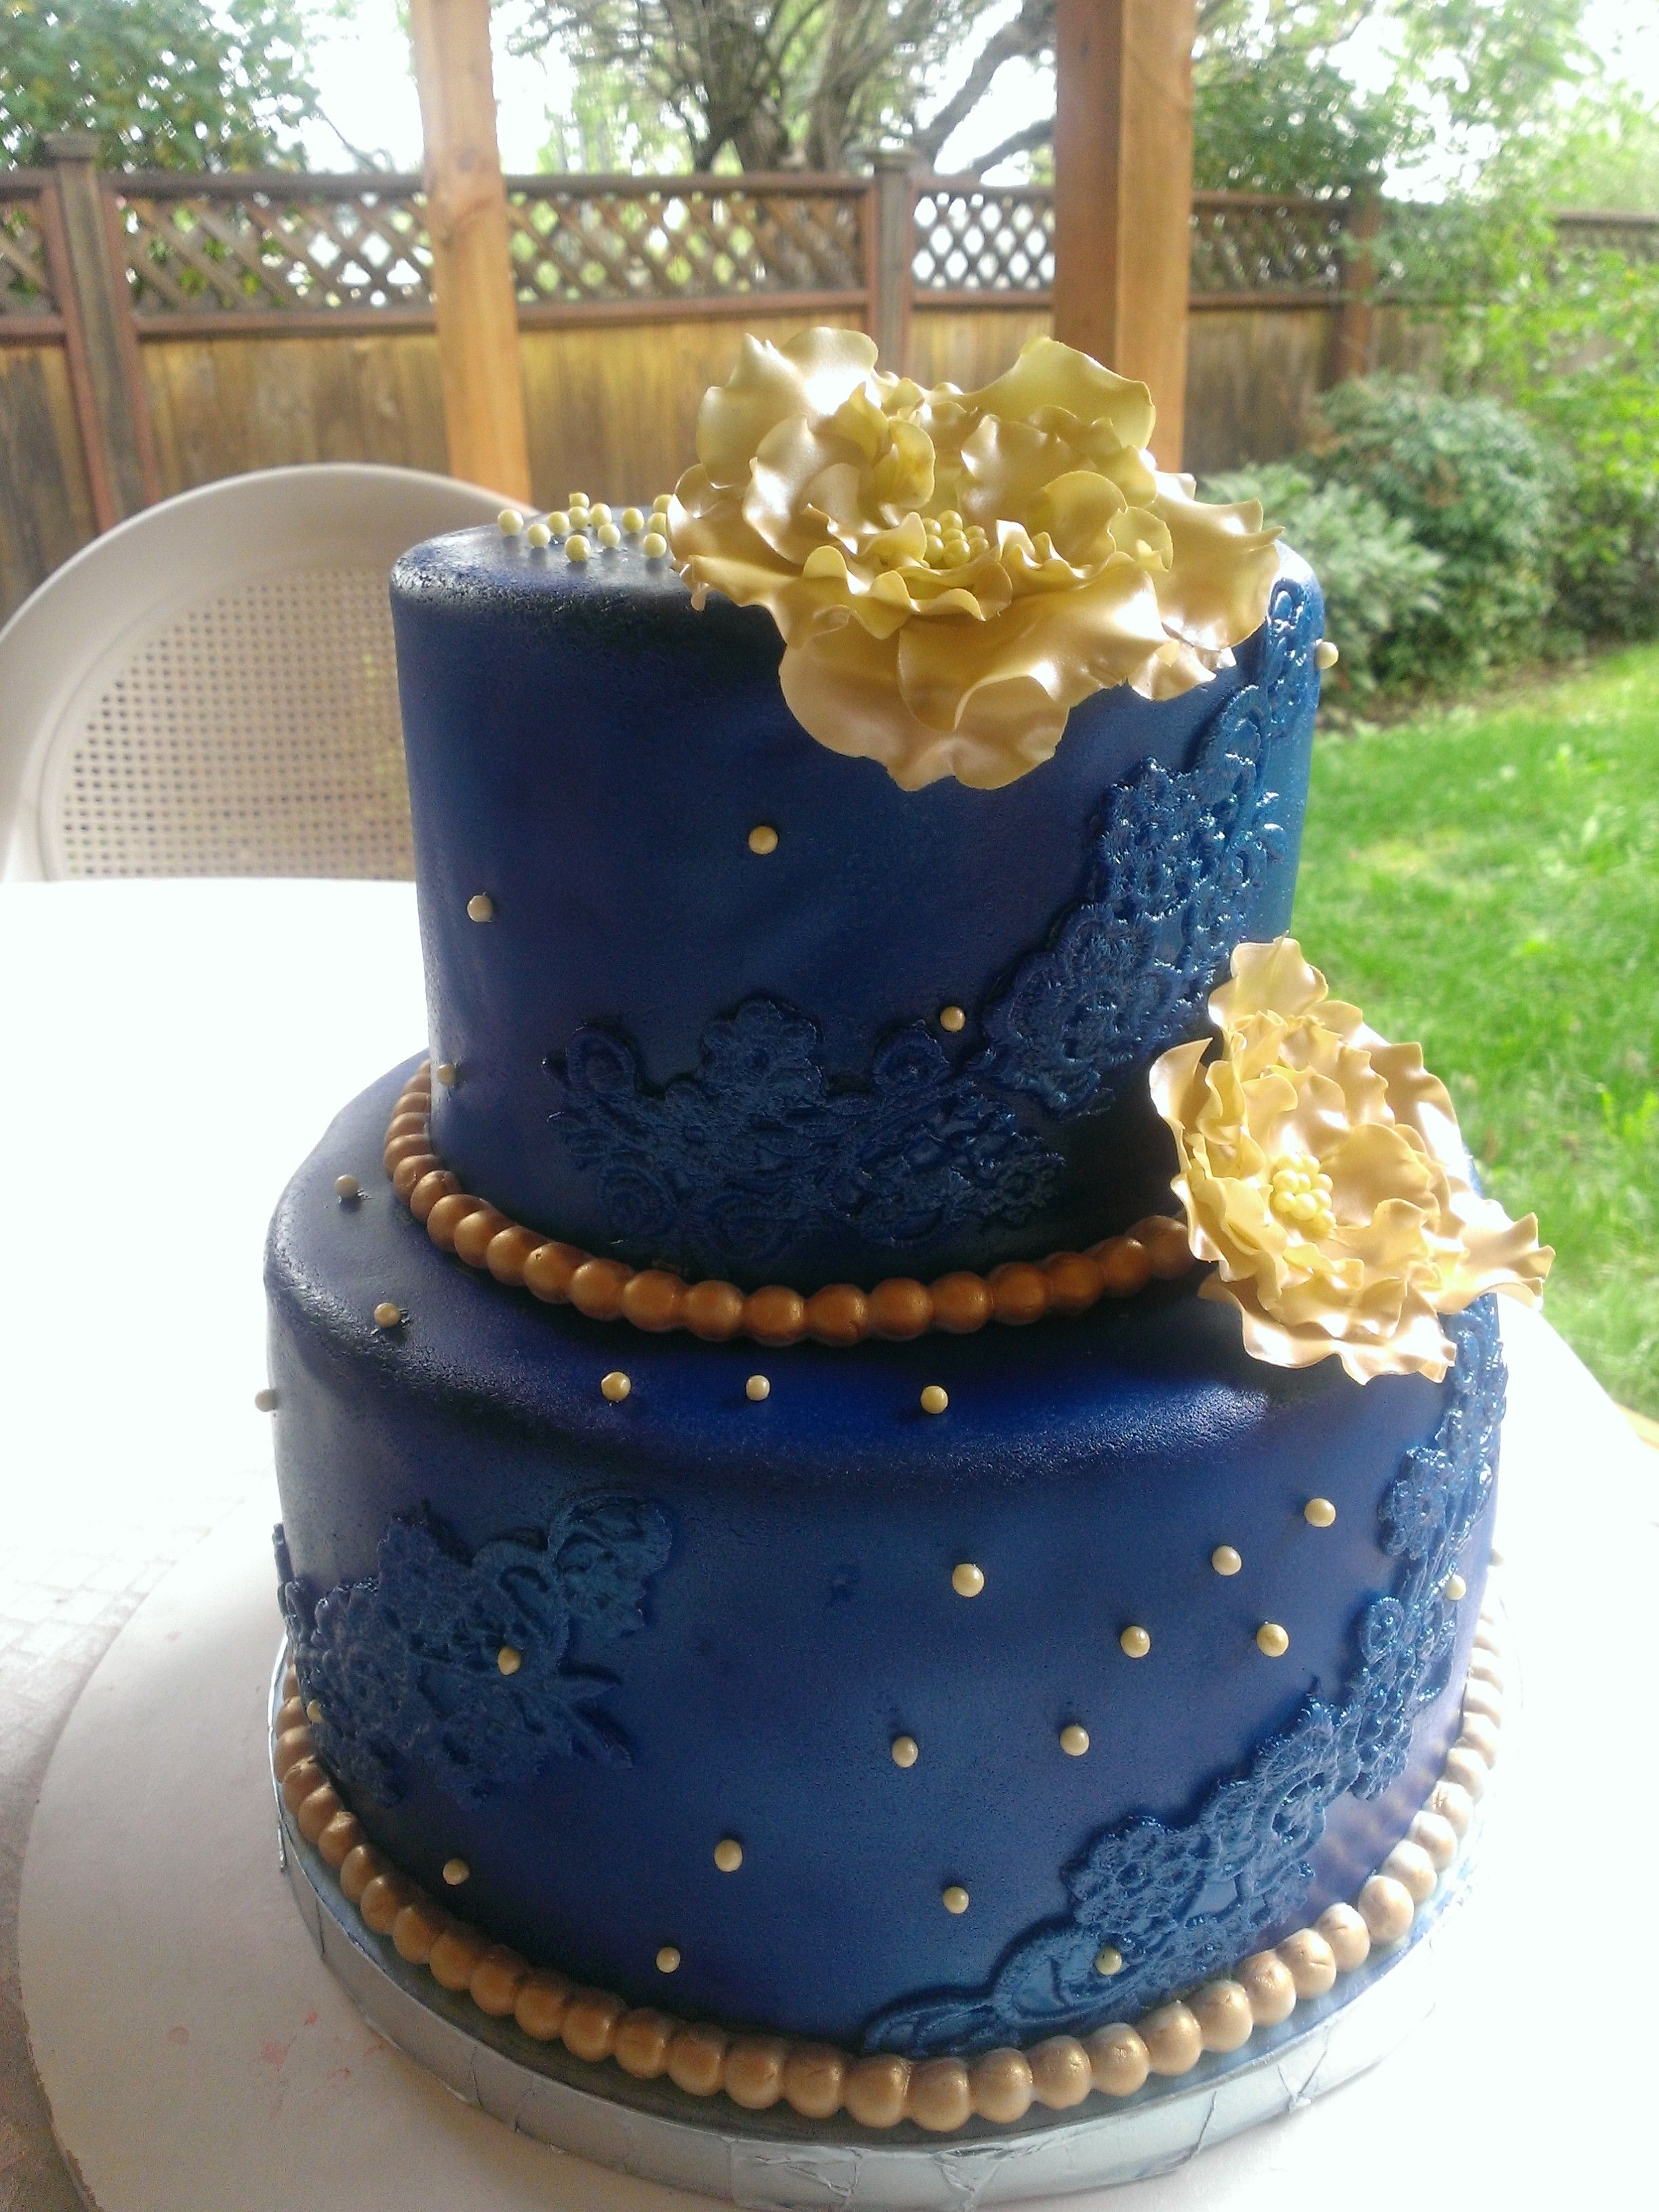 Pin By Mavia Huezo Molina On Cakes By Mavia Blue Birthday Cakes Royal Blue Wedding Cakes Wedding Cakes Blue